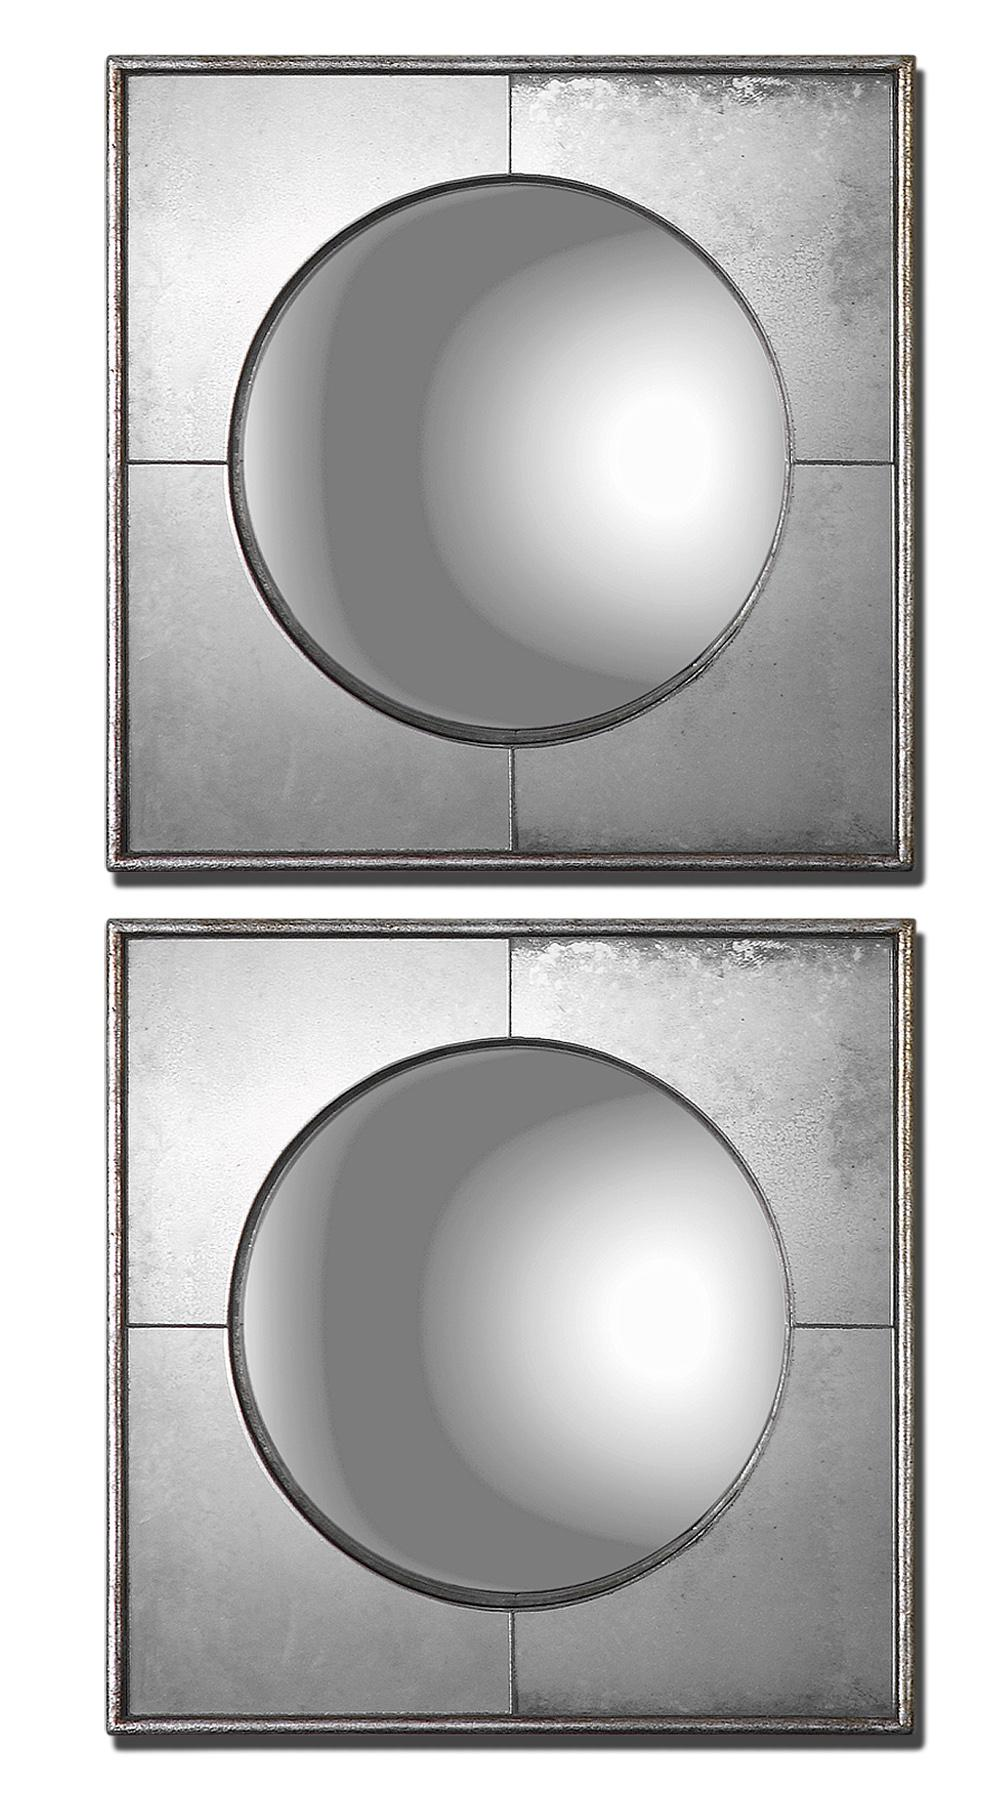 Uttermost Mirrors Savio Squares Set of 2 - Item Number: 12829